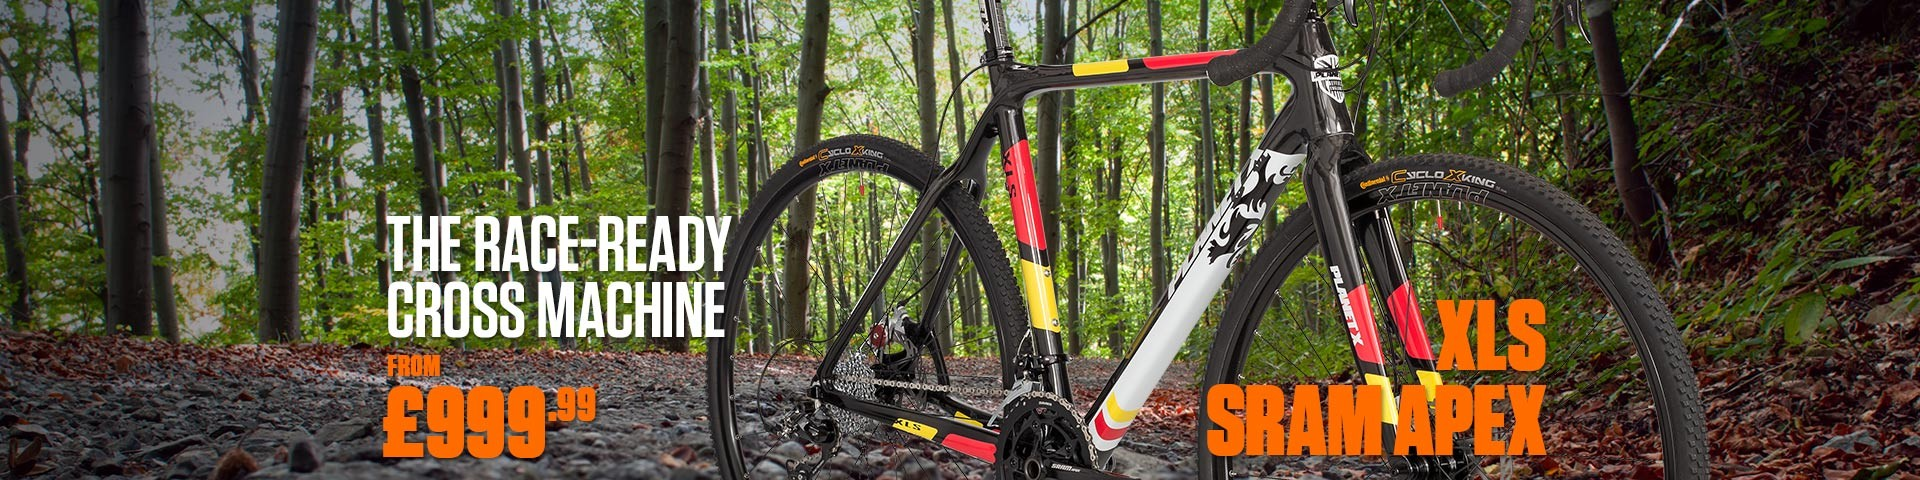 Planet X XLS SRAM APEX Cyclocross Bike